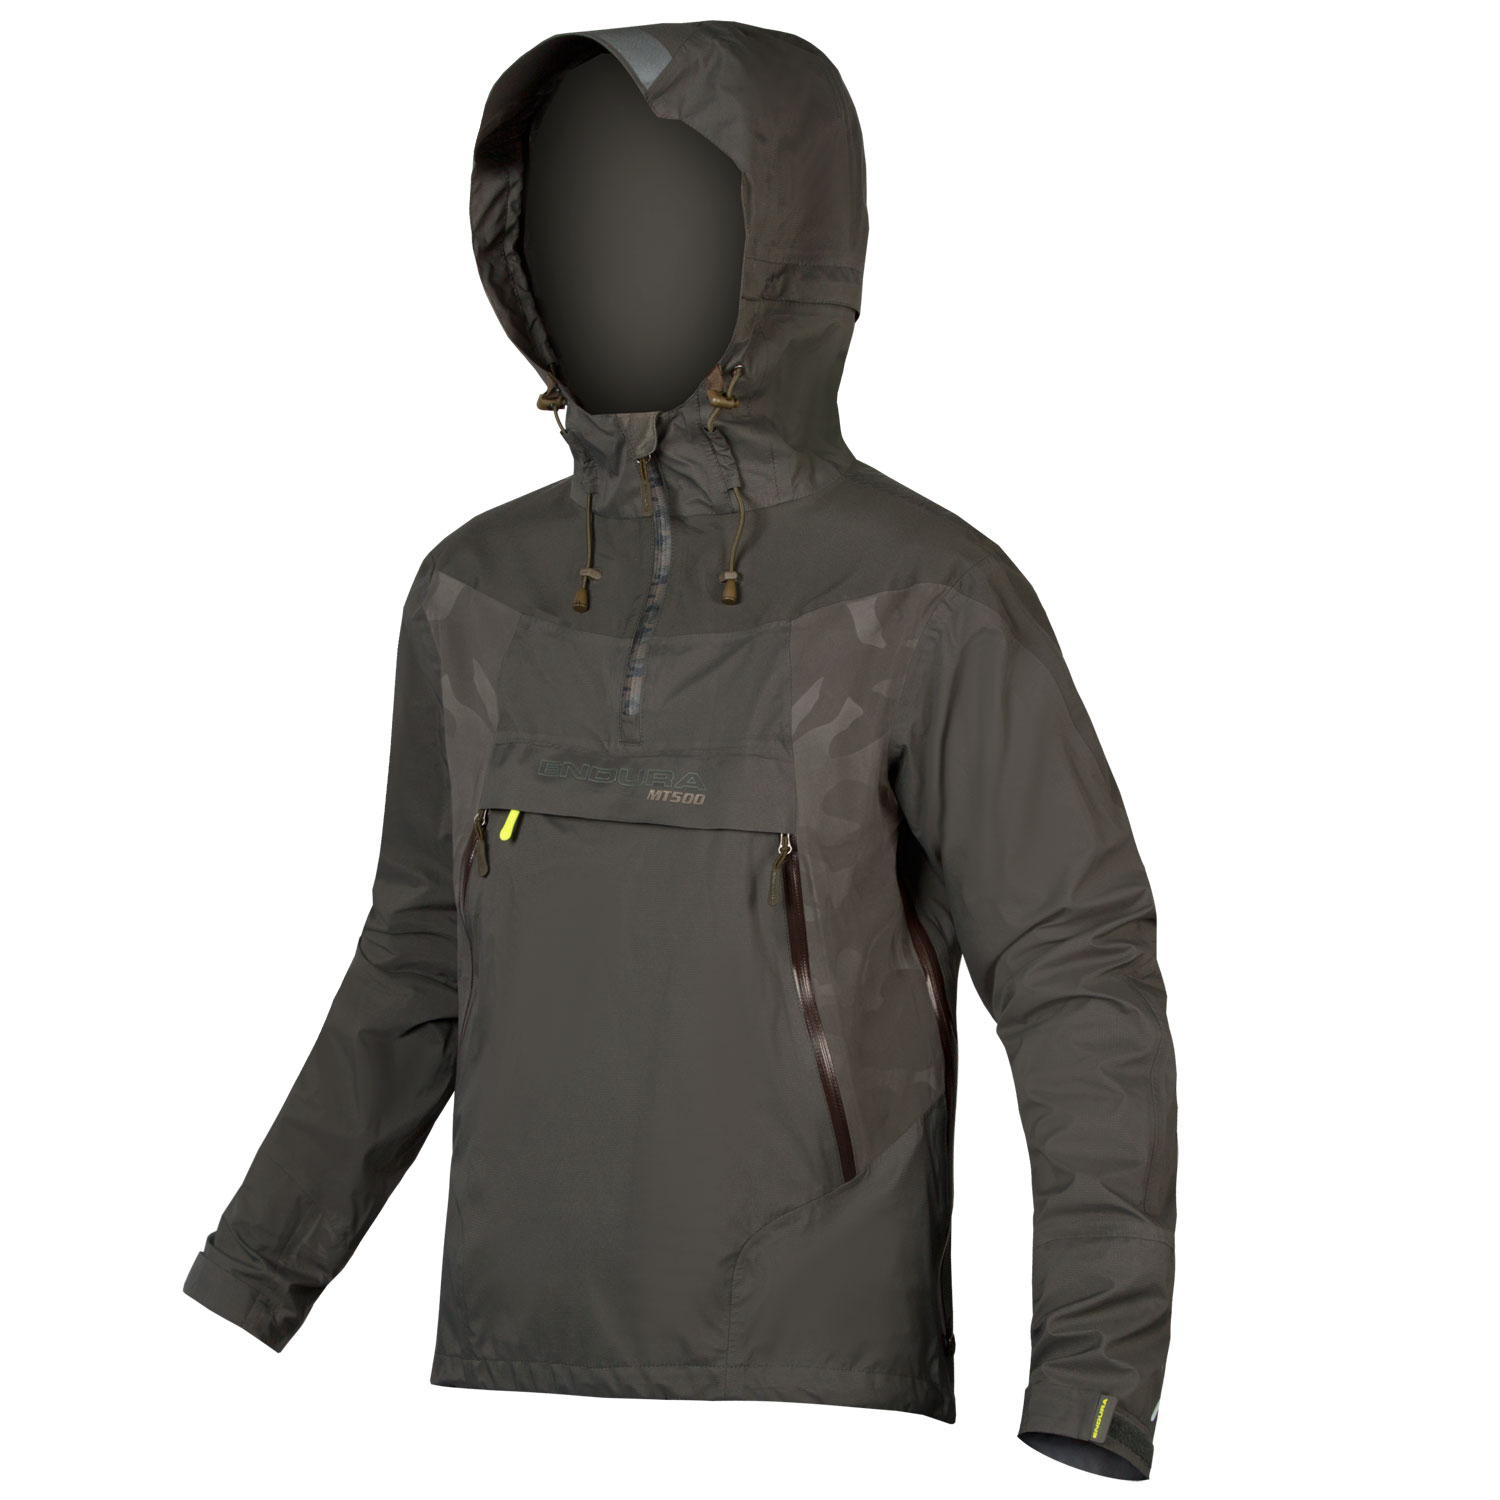 MT500 Waterproof Pullover | Endura